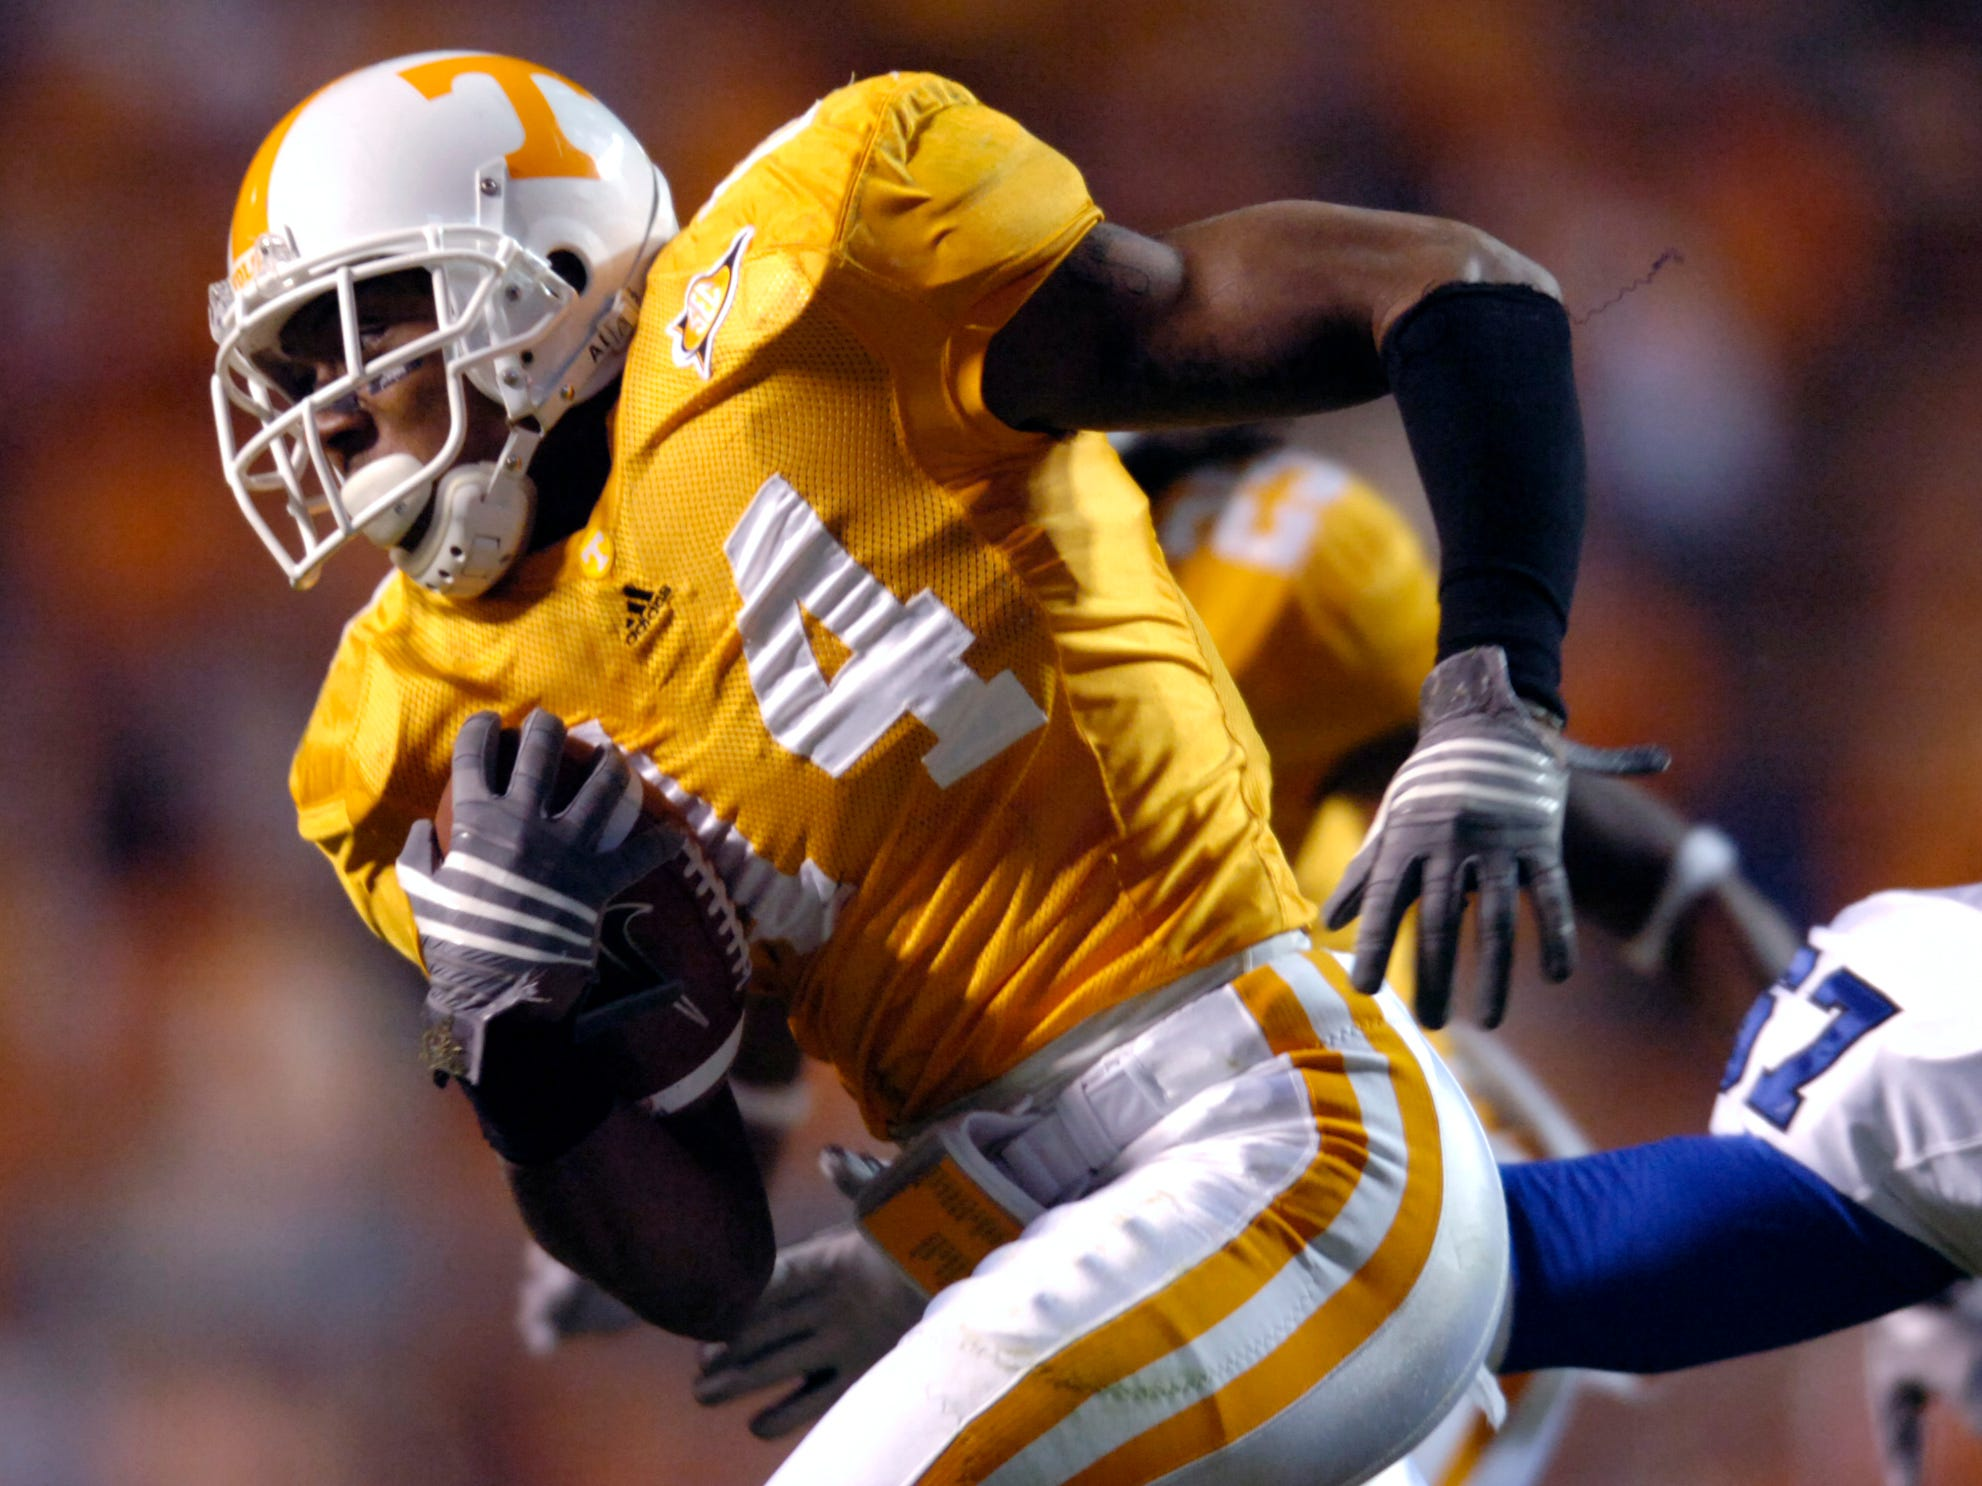 Tennessee cornerback Eric Berry (14) intercepts a pass from Memphis  quarterback Will Hudgens (7) and is one interception and 8 yards away from breaking an NCAA record on Saturday, Nov. 7, 2009 at Neyland Stadium.